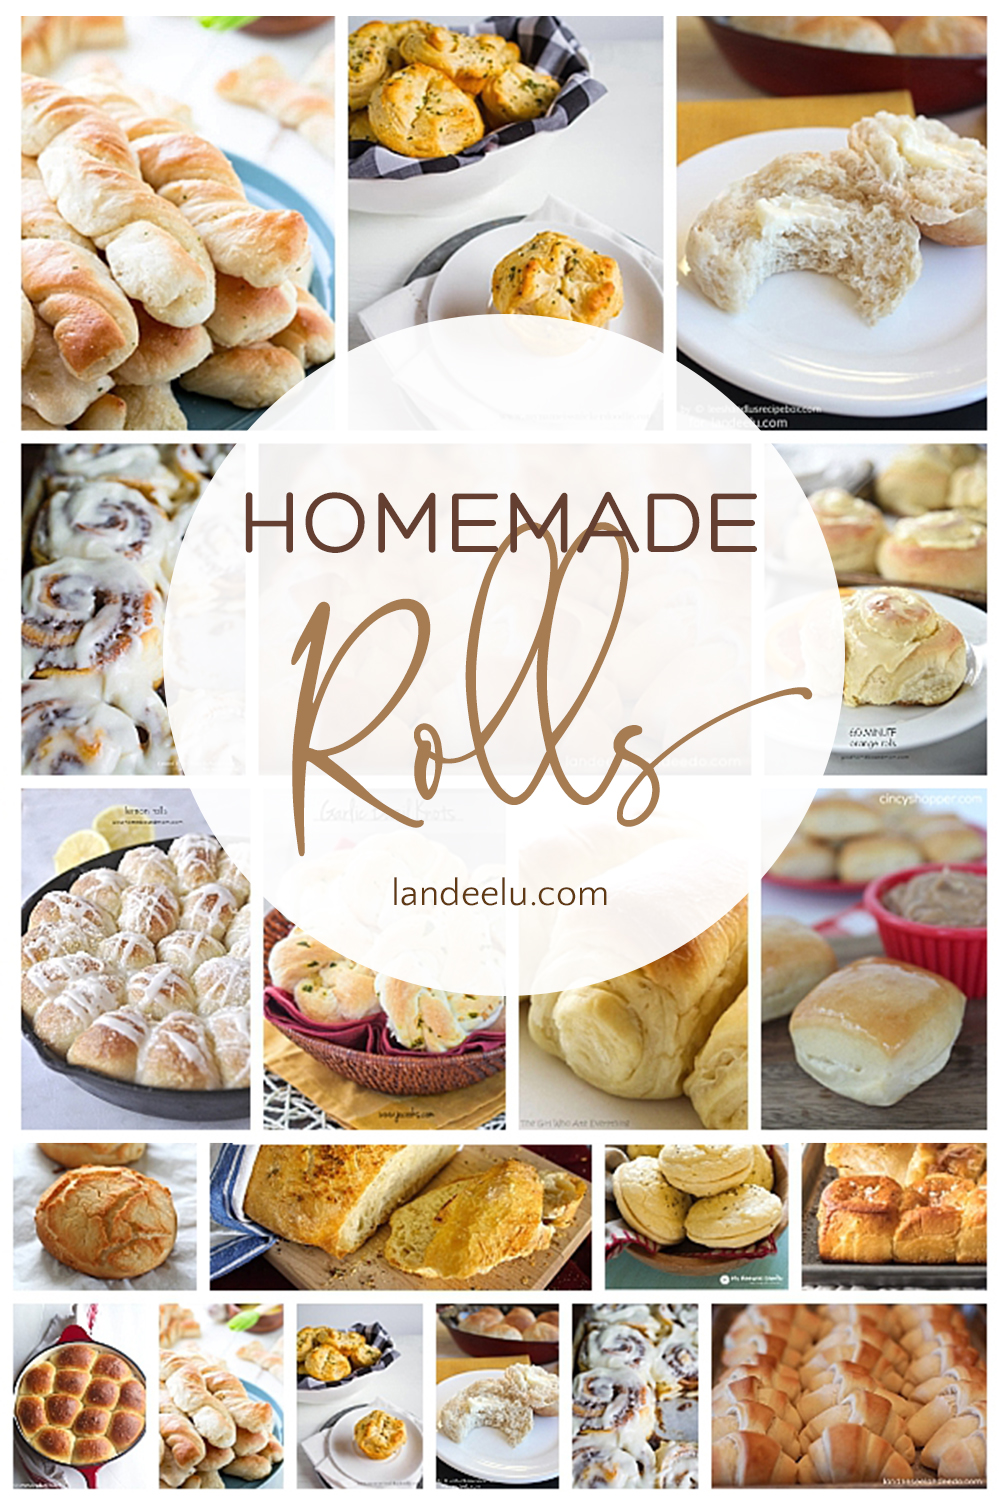 Dinner rolls are the things dreams are made of! Tons of amazing dinner roll recipes! #dinnerrolls #dinnerrollrecipe #homemaderolls #homemadedinnerrolls